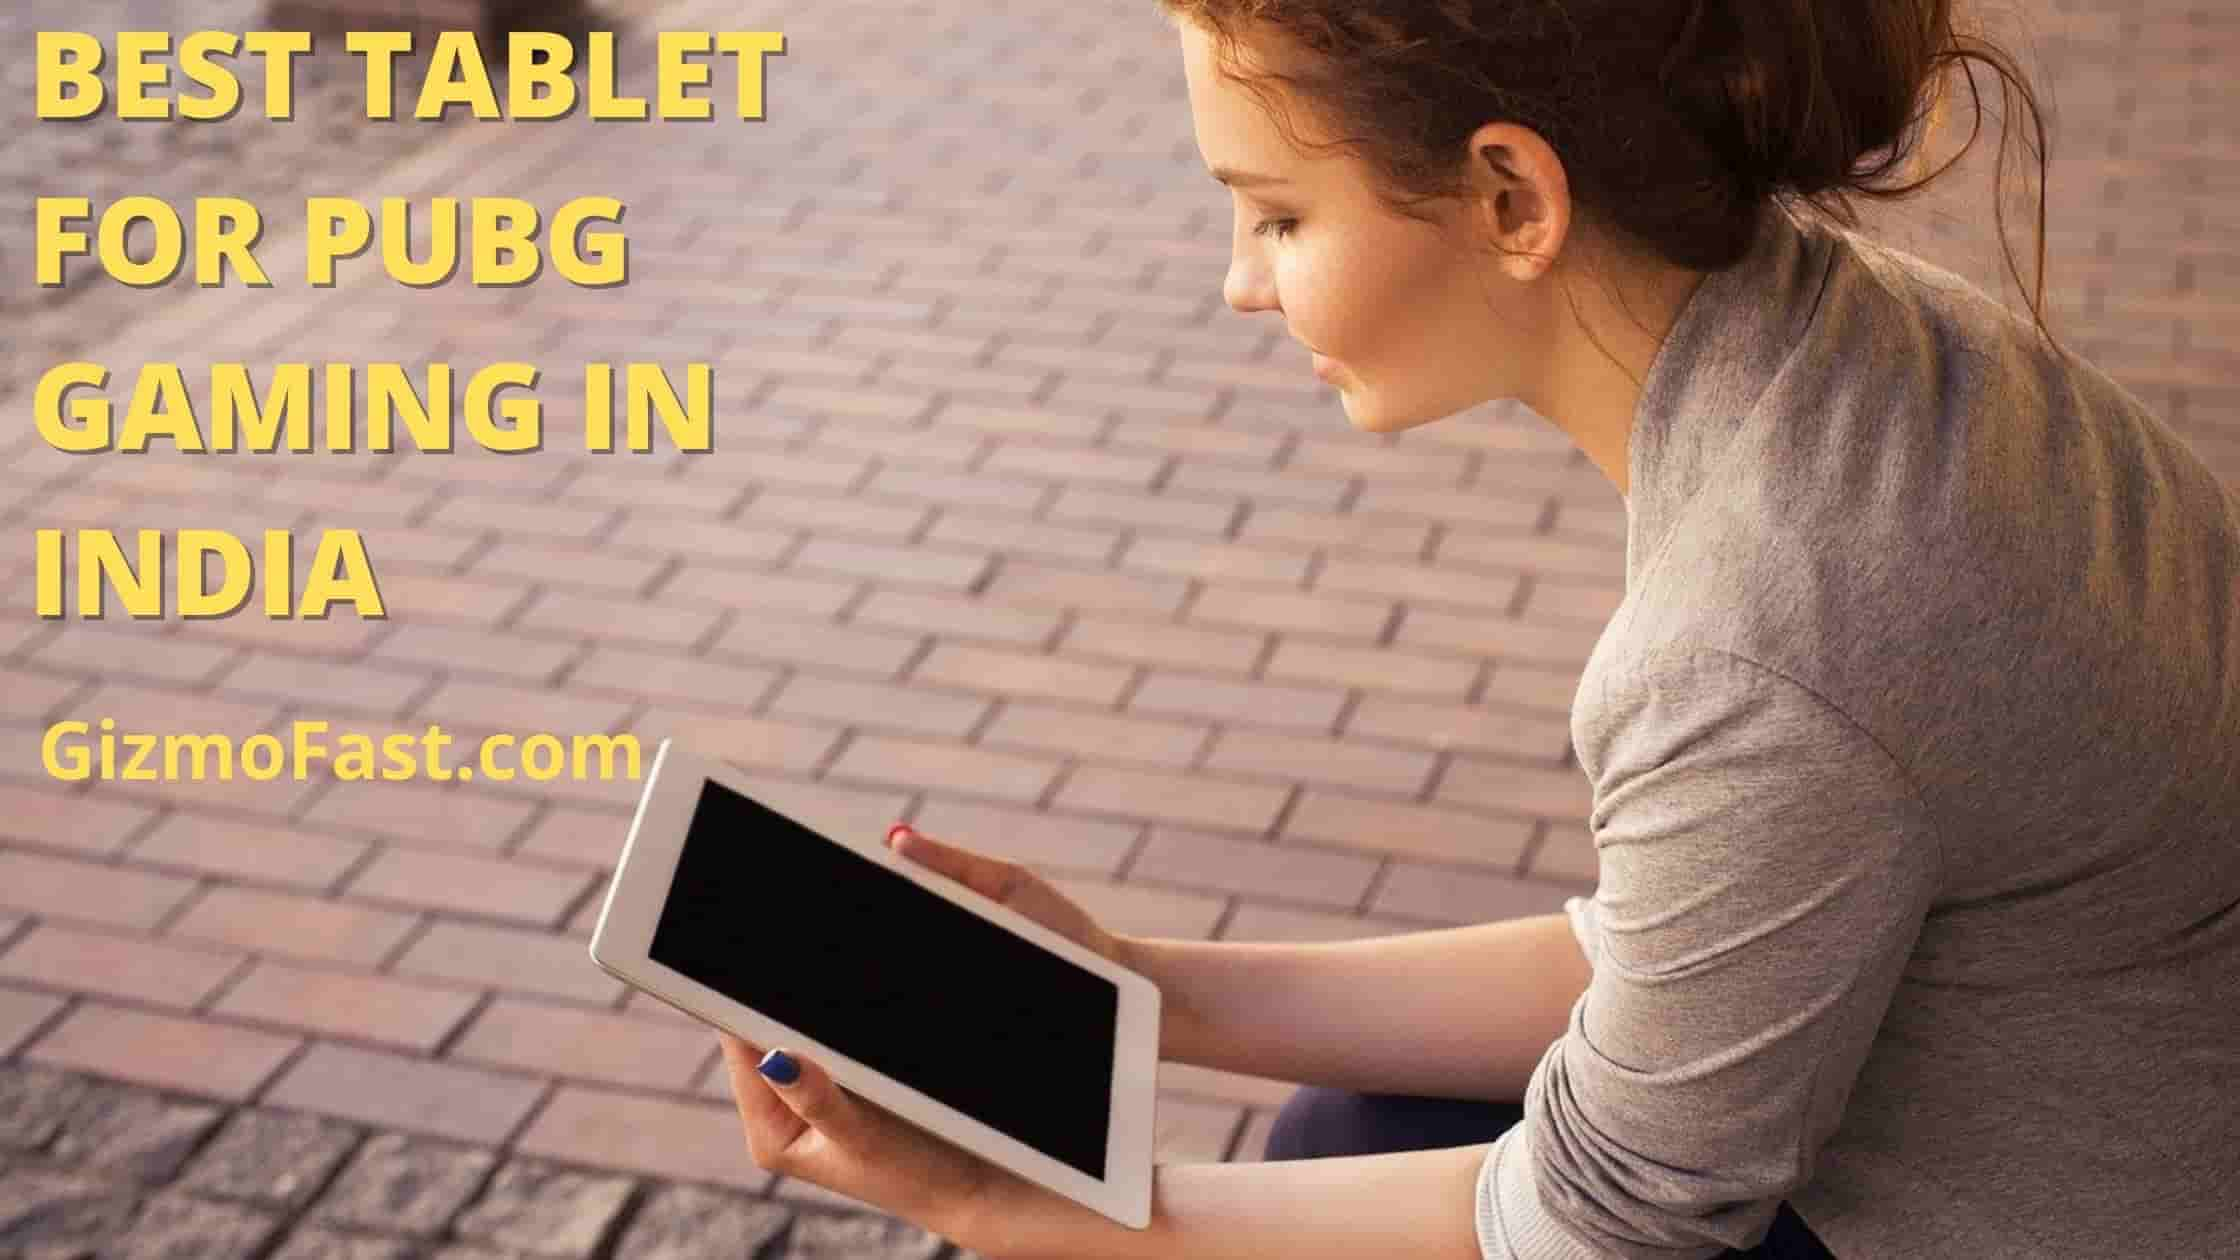 Best Tablet for Pubg